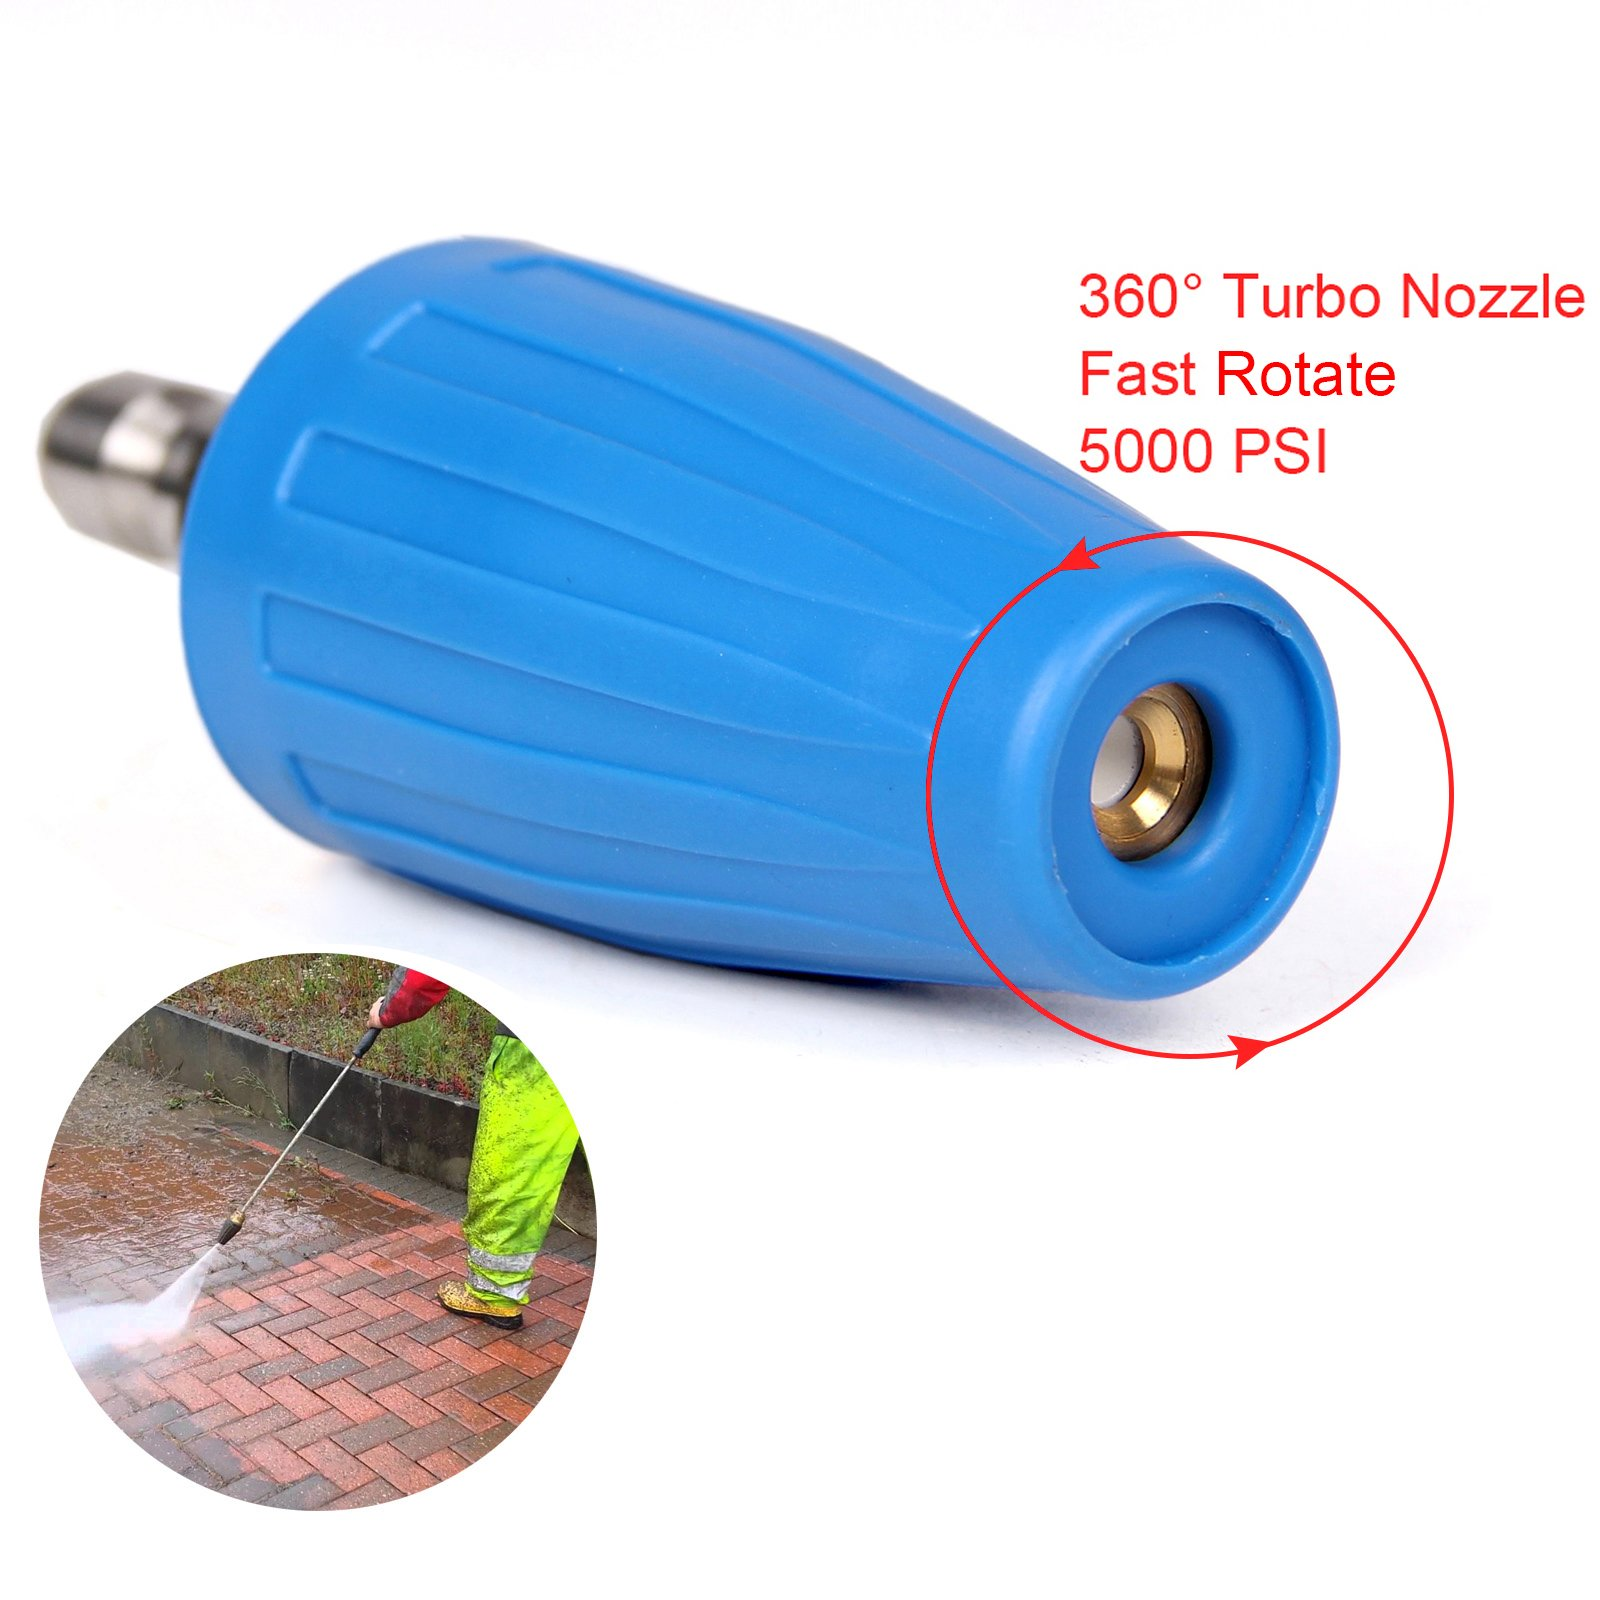 PENSON & CO. 4.0 GPM Turbo Rotary Rotating Nozzle for Pressure Washer 1/4 Quick Connect 5000PSI